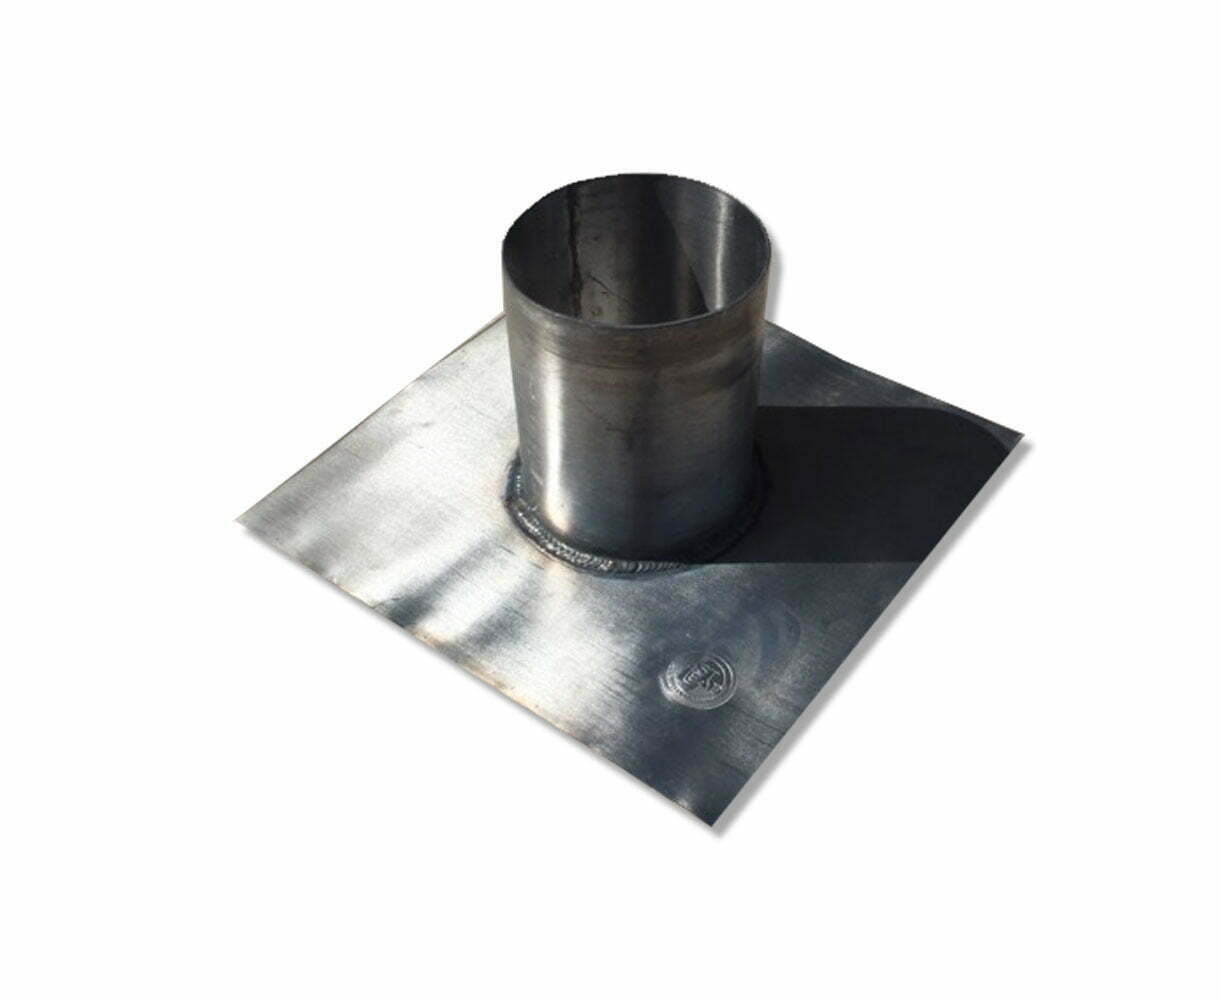 Flat Roof Lead Slates Pipe Flashings  sc 1 st  Just Lead & Flat Roof Lead Slates Pipe Flashings u2013 Just Lead Workshop ...